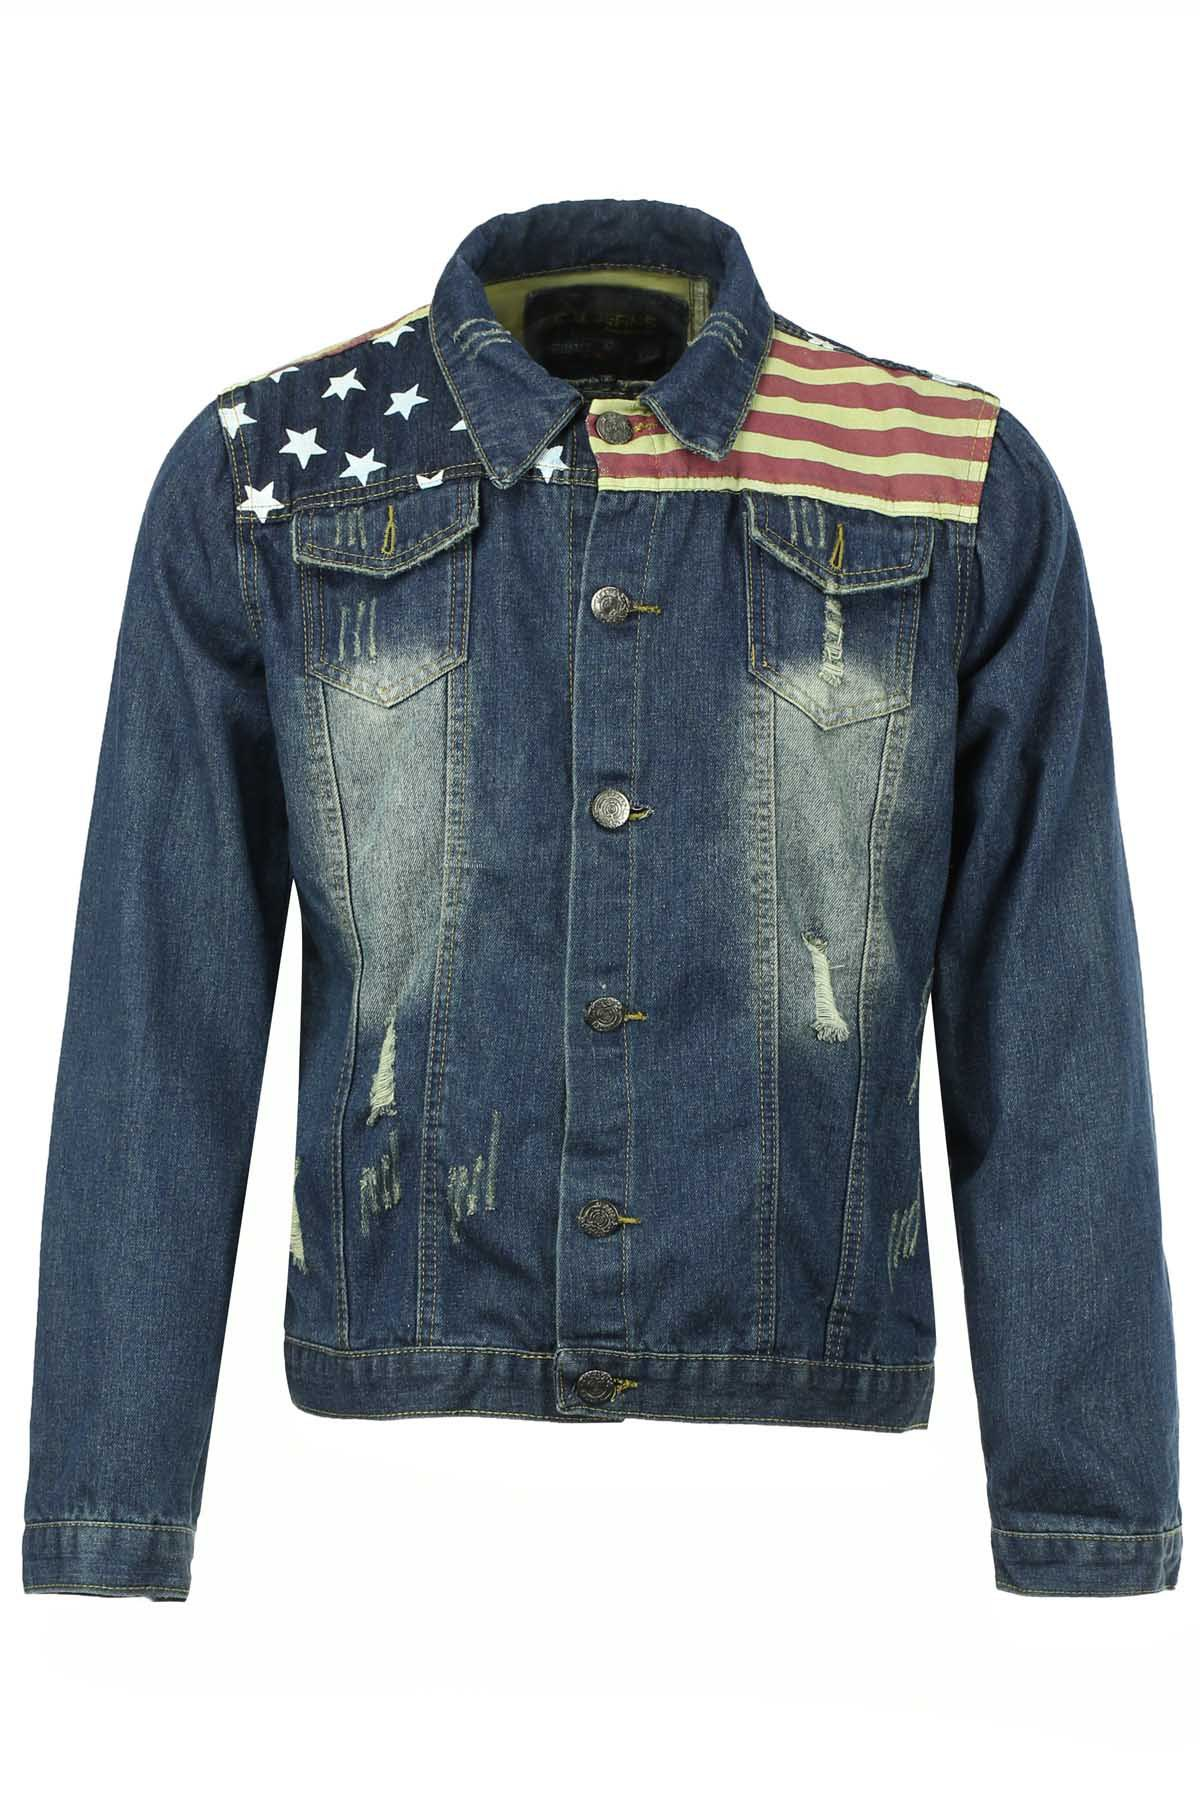 Stylish Turn-down Collar Slimming Five-Pointed Star and Stripes Print Destroy Wash Long Sleeves Men's Denim Jacket - BLUE M